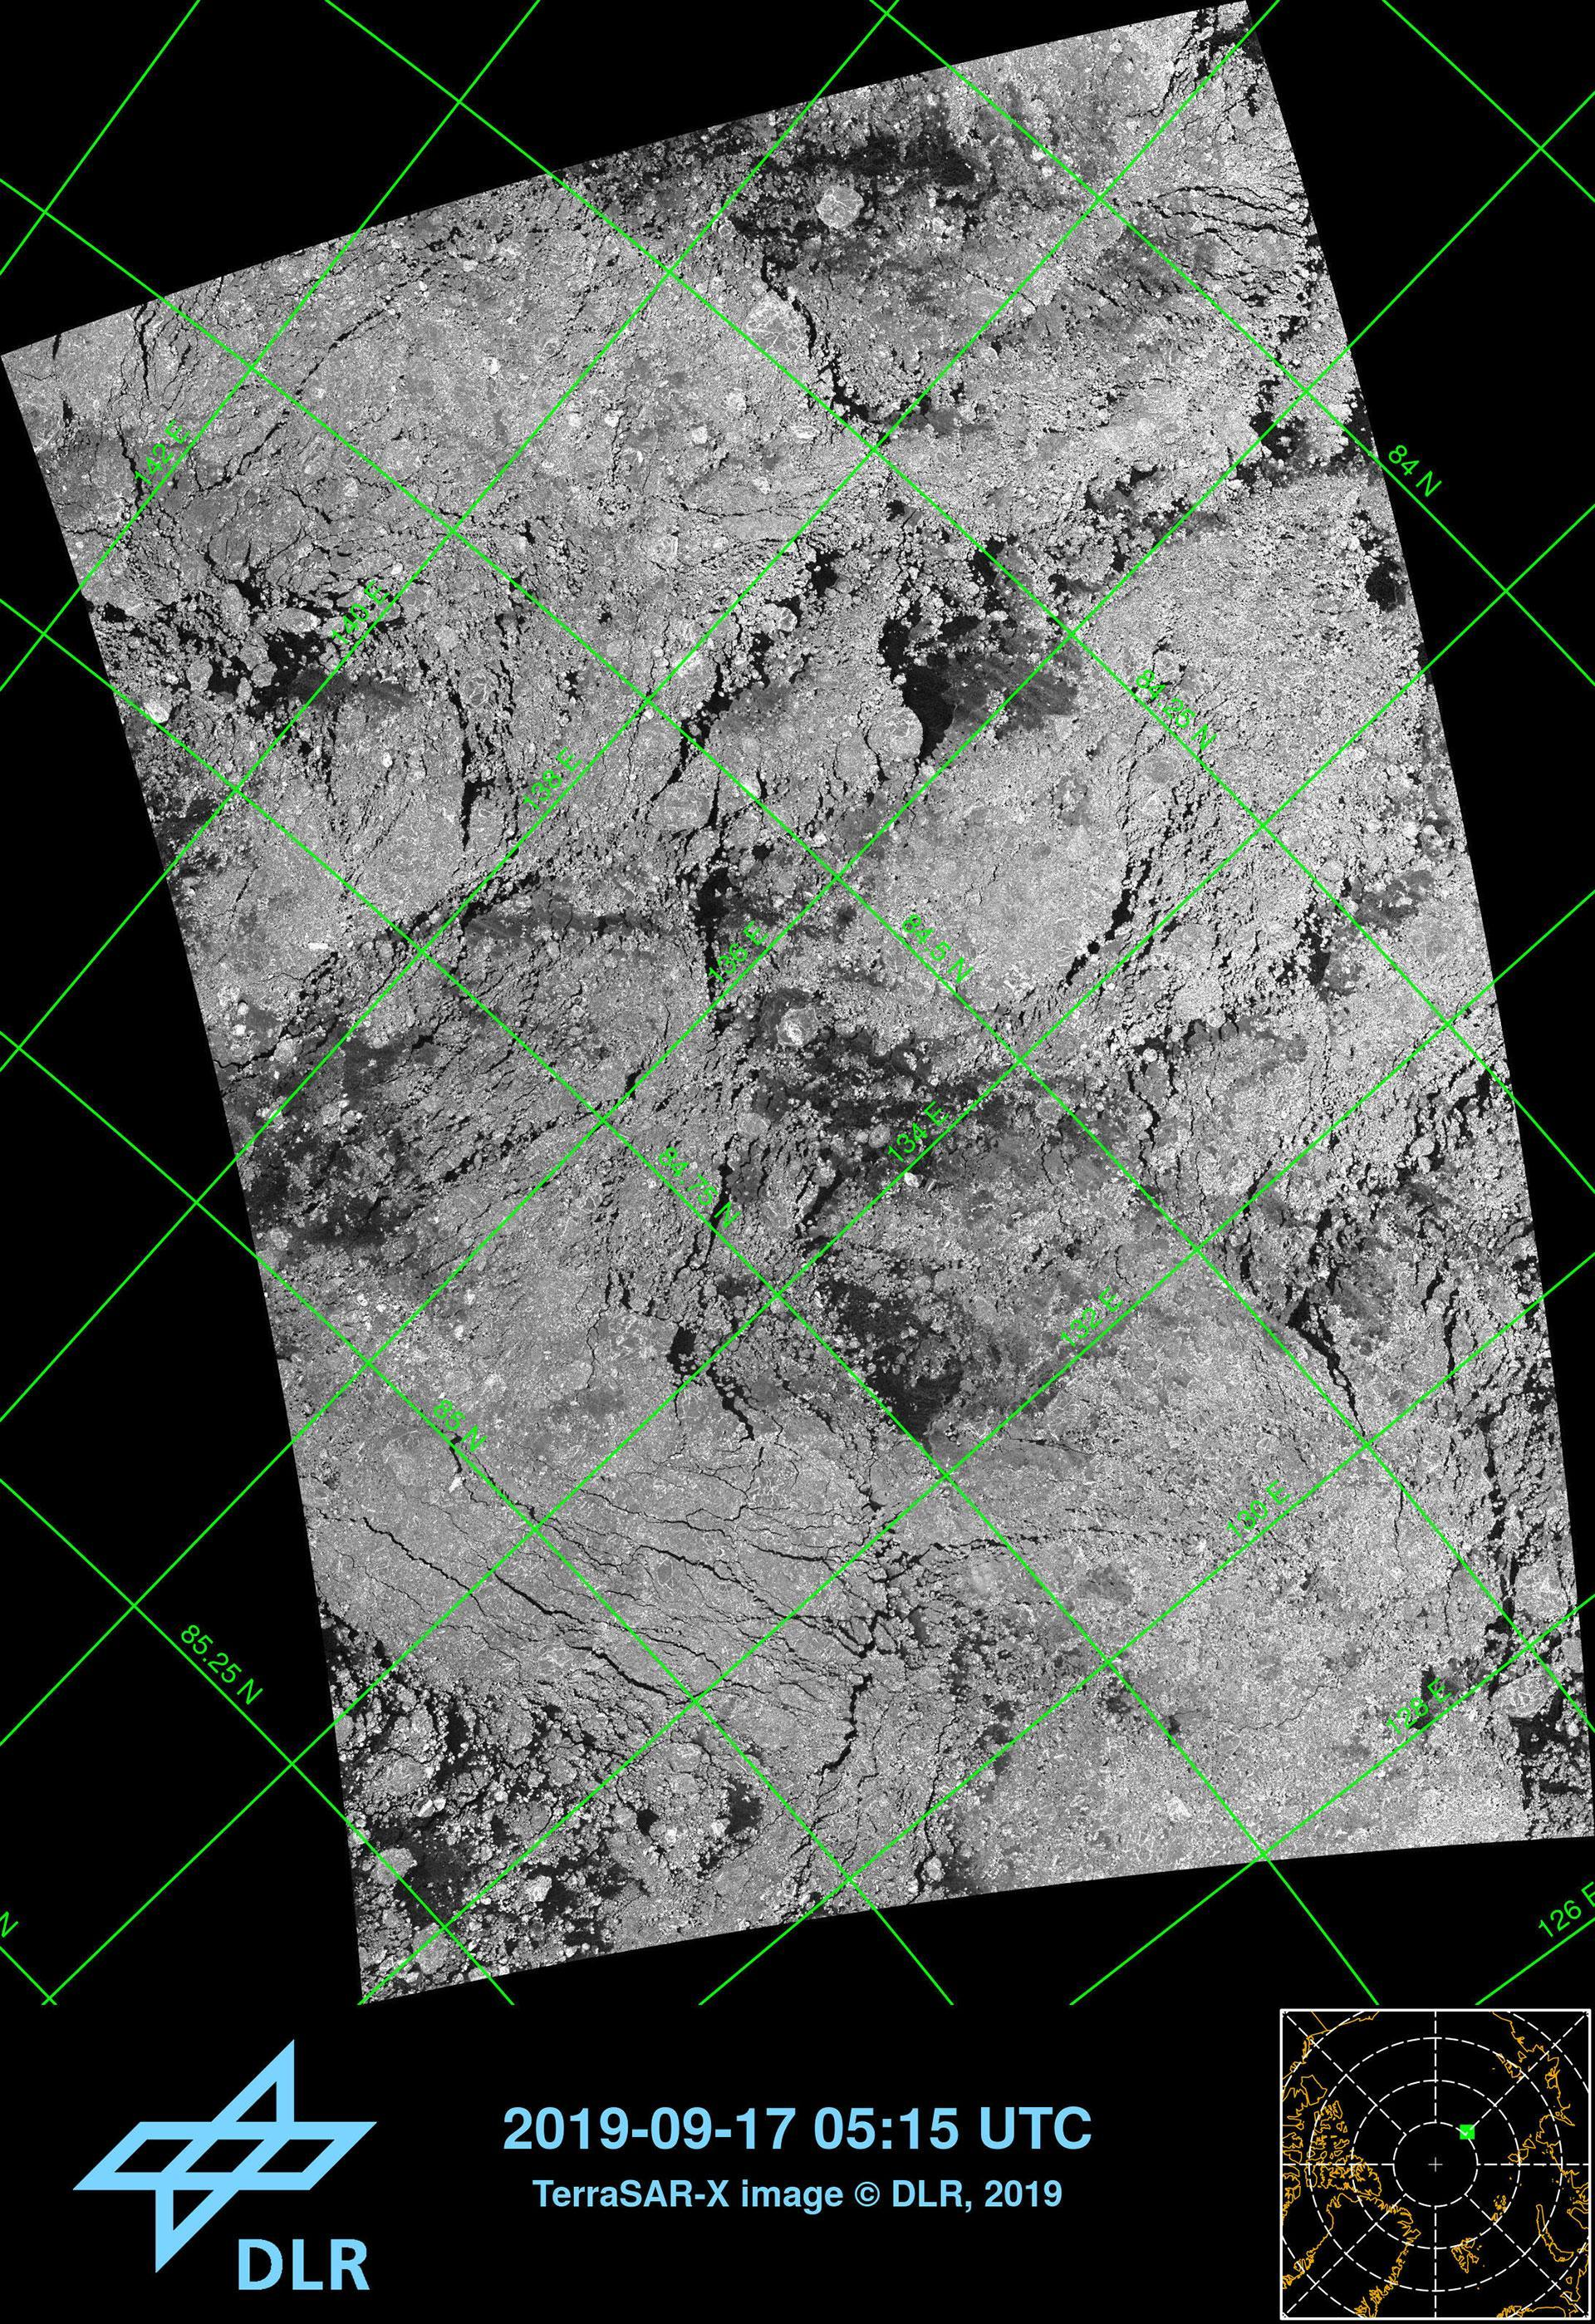 TerraSAR-X image of the target region for MOSAiC from 17 September 2019